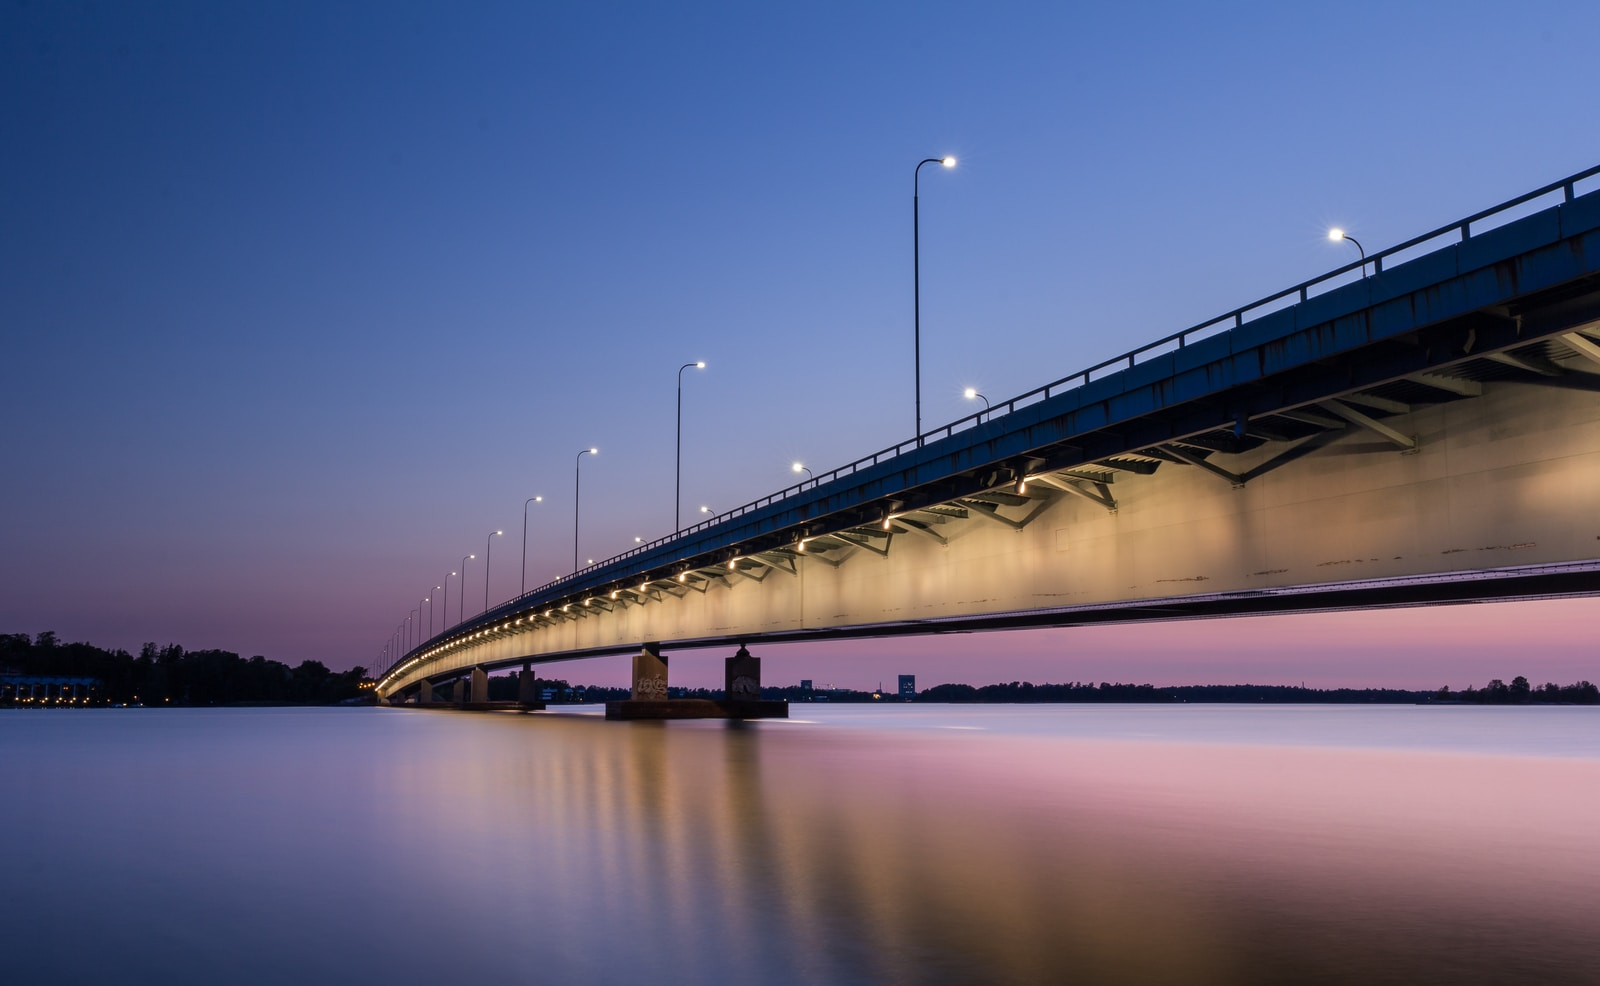 gray concrete bridge with body of water during nighttime